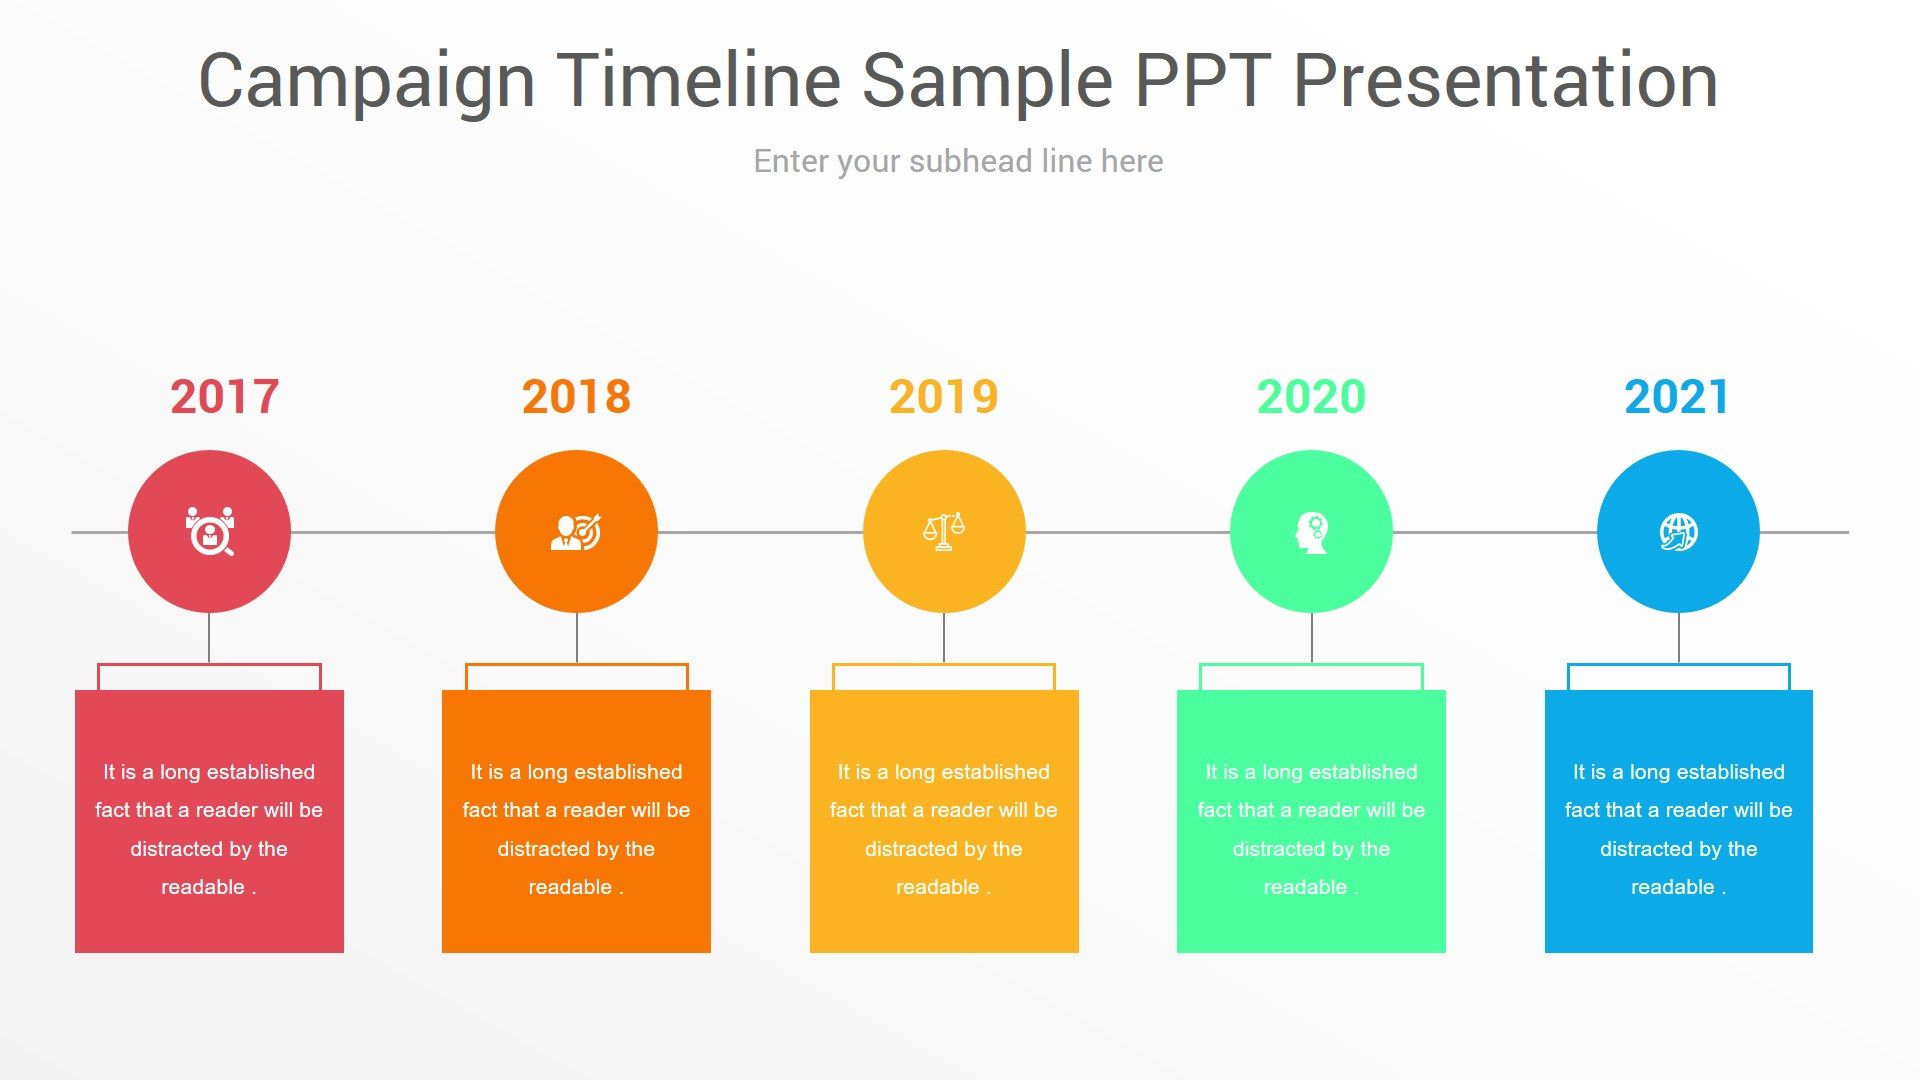 004 Imposing Timeline Sample For Ppt High Definition  Powerpoint Template 2010 ExampleFull